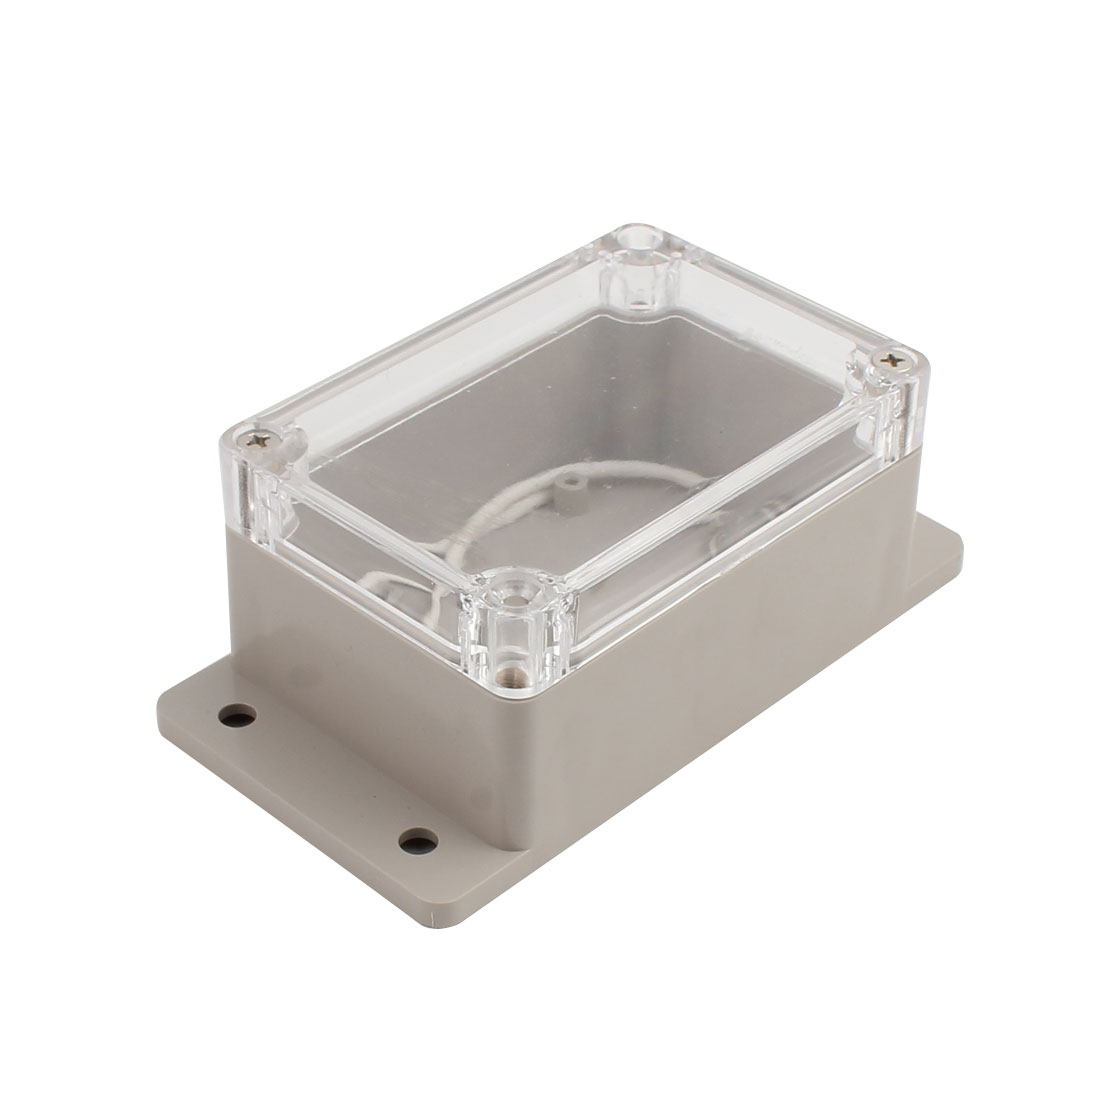 100x68x50mm Clear Cover Junction Electronic Project Box Enclosure